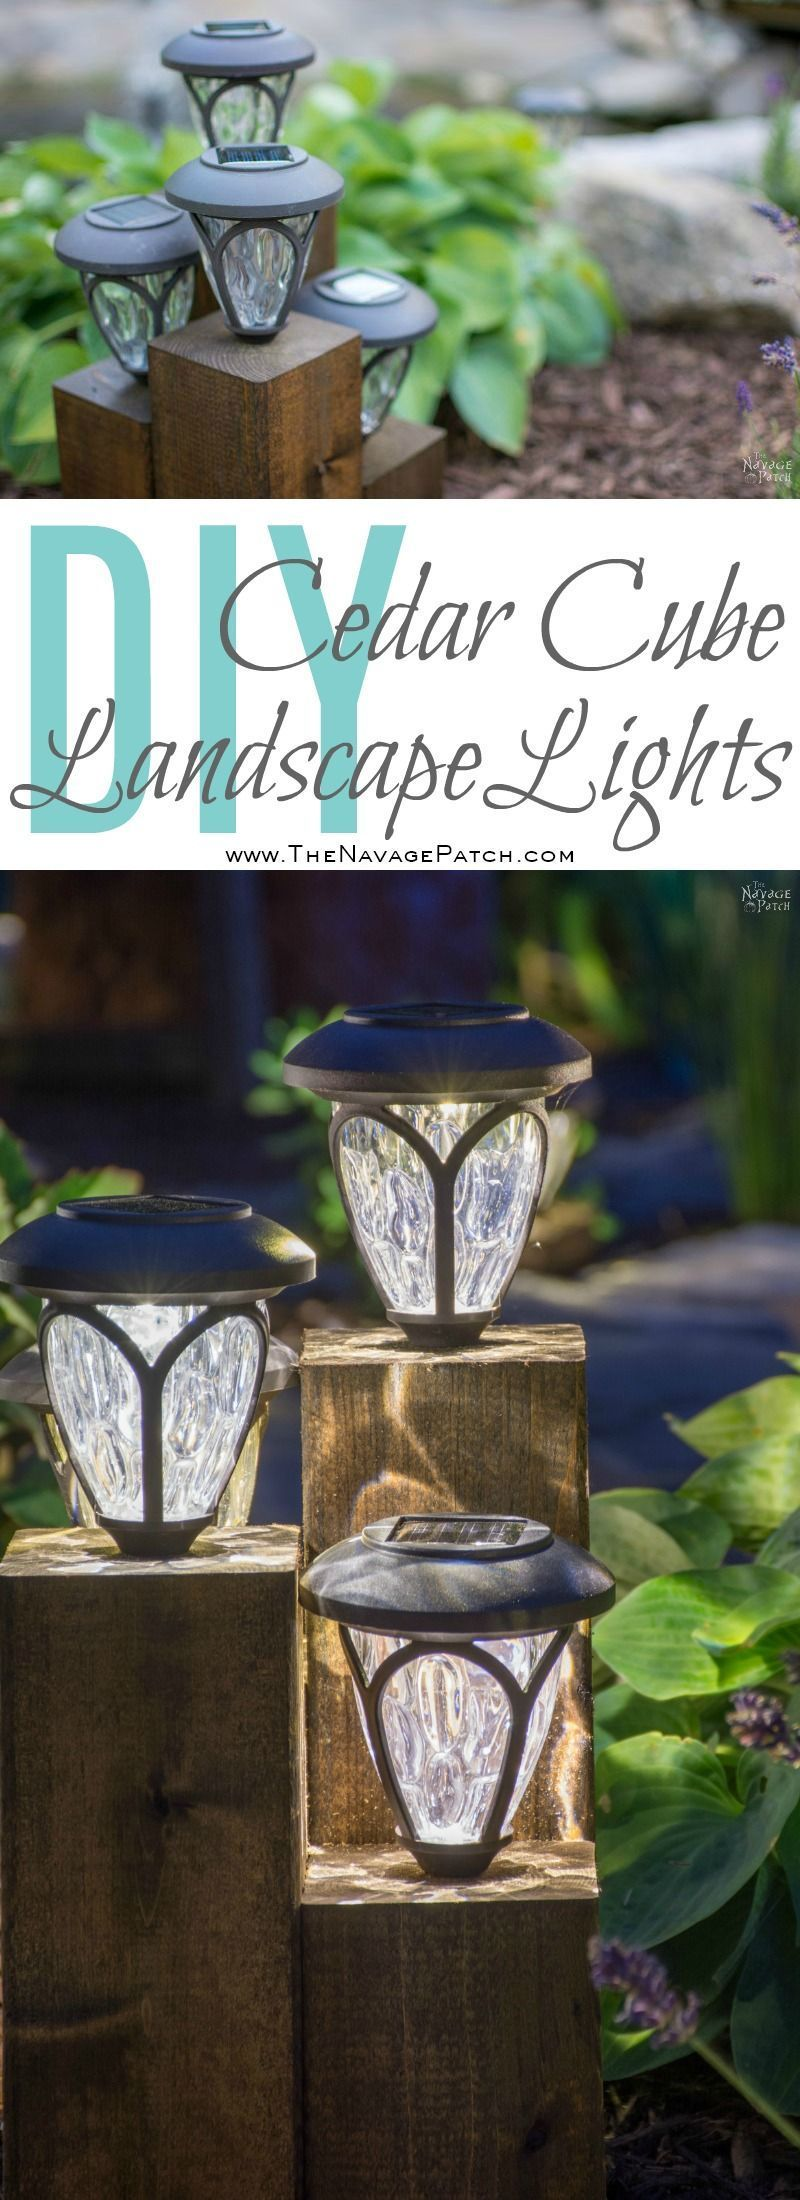 diy cedar cube landscape lights diy solar outdoor lights how to clean a solar panel how to make nonworking the solar lights work again simple woodworking